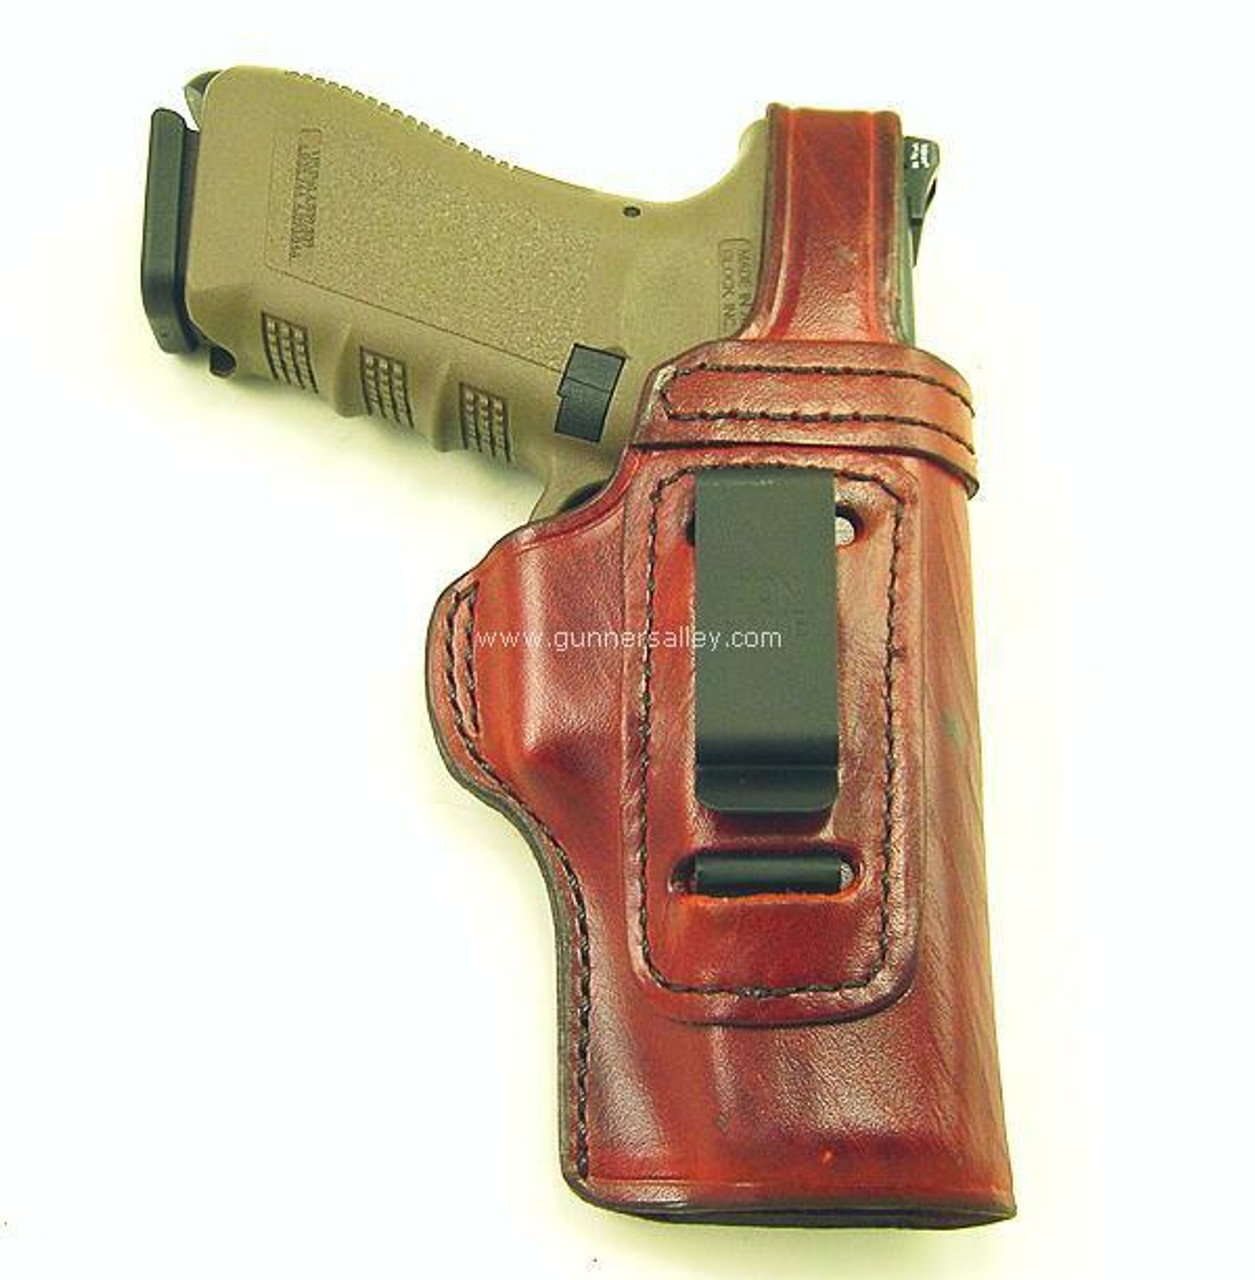 Saddle Brown - Front View - Right Hand - Shown with a Glock 17 for Demonstration Purposes